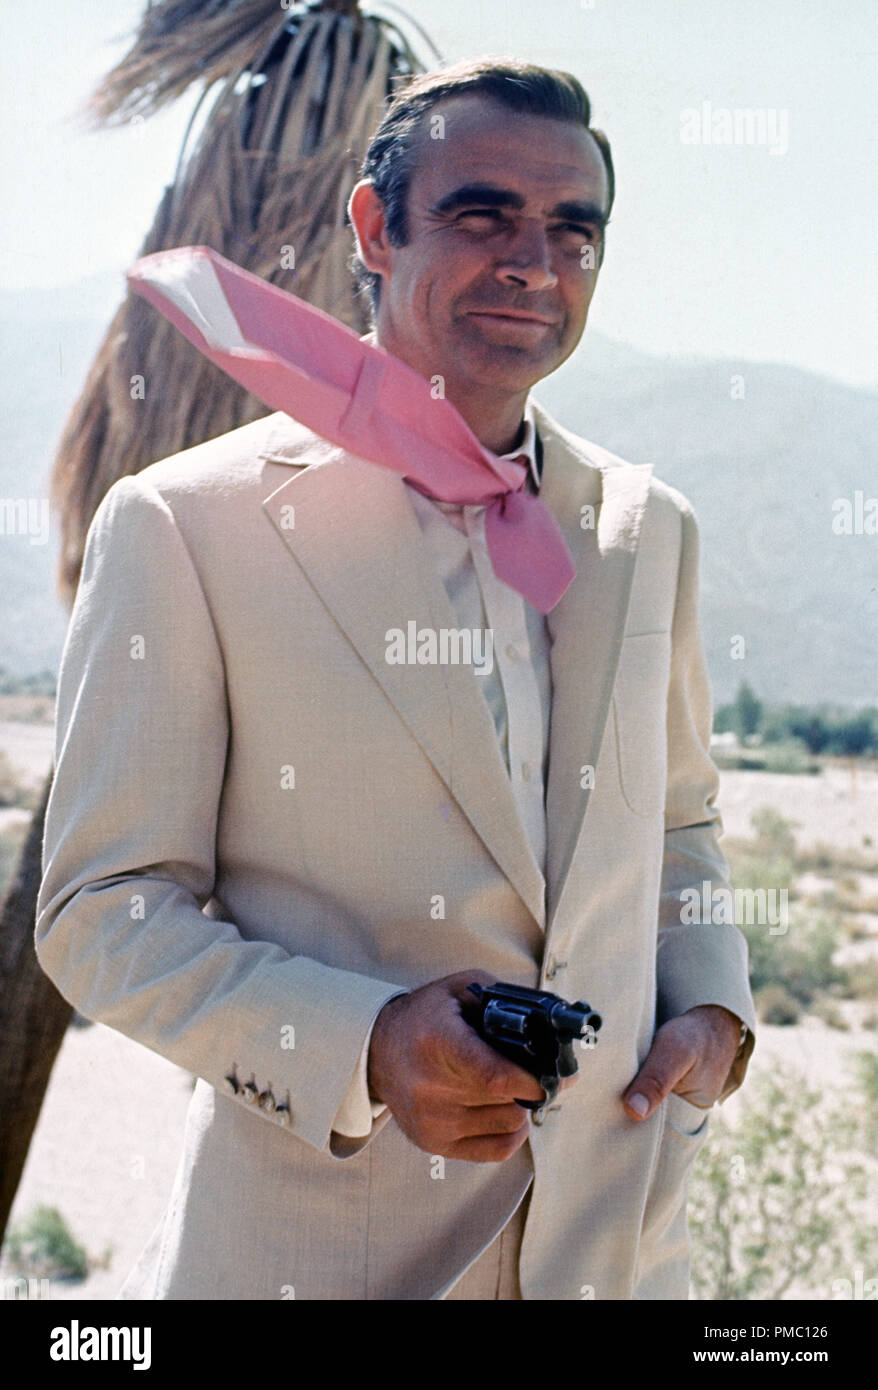 James Bond Sean Connery Suit High Resolution Stock Photography And Images Alamy